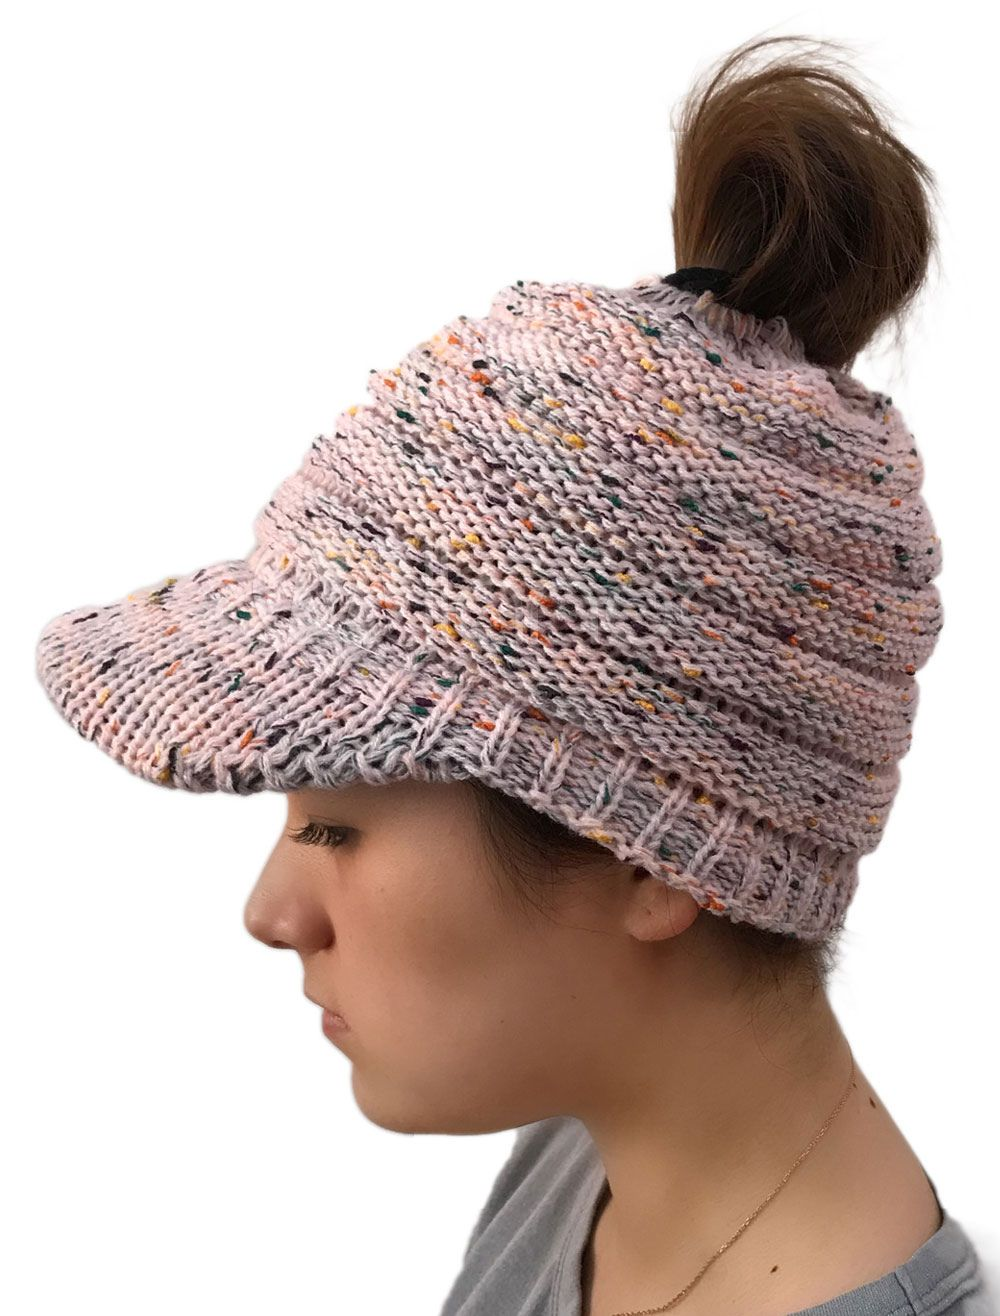 0d4b9998c4450 Ponytail Beanie Hat Chunky Knit Messy Bun Cap Warm Winter Visor Hat   Chunky